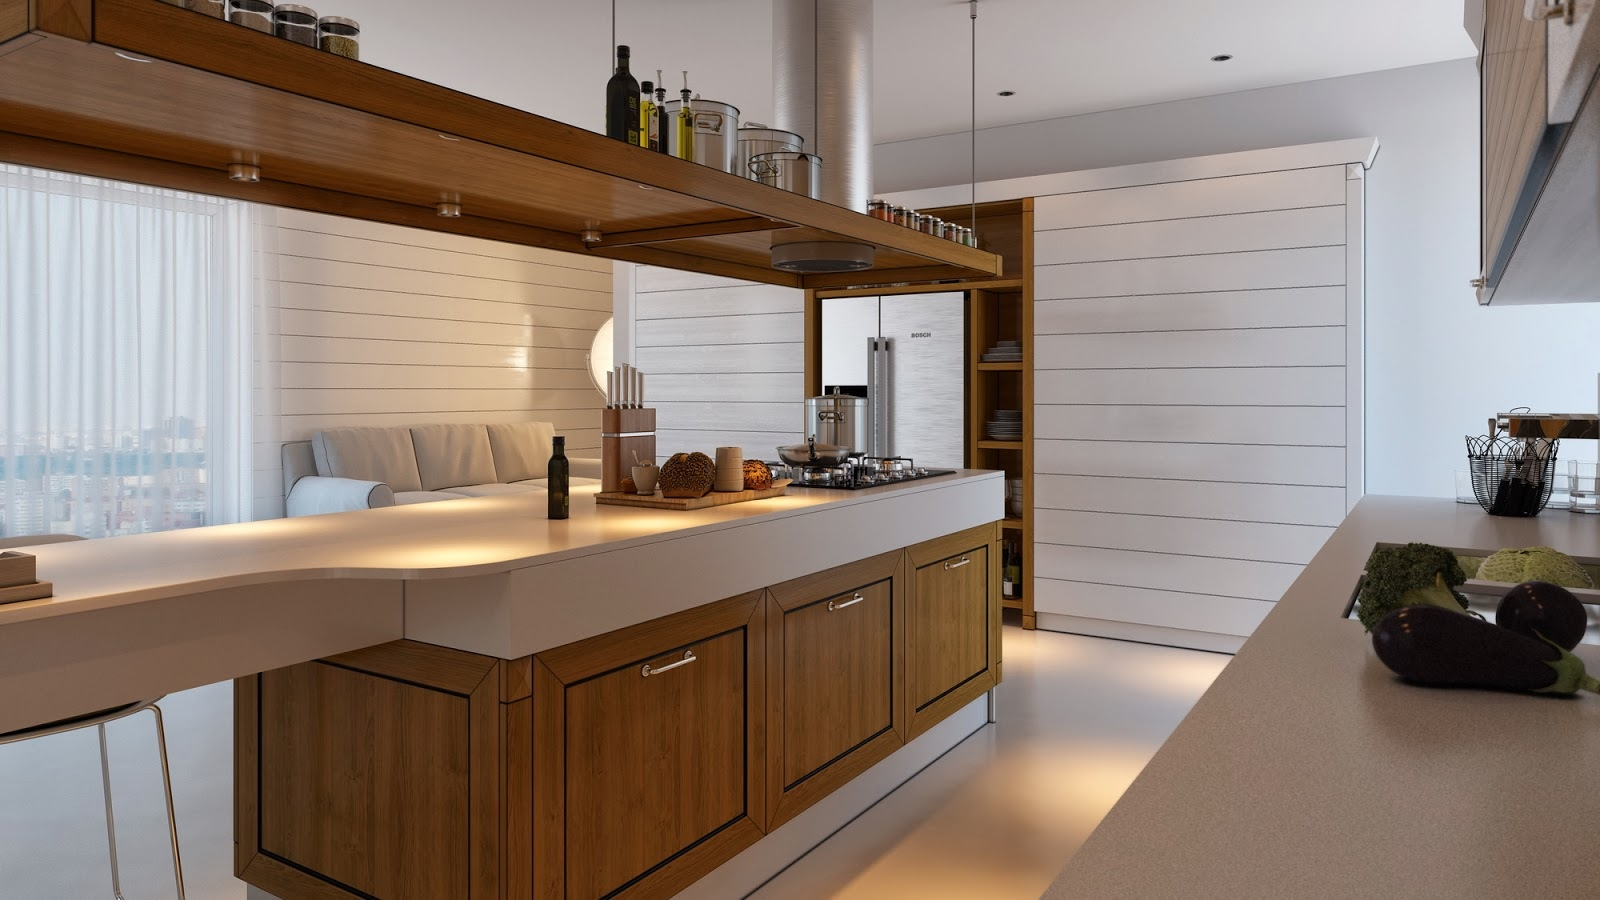 Minimalist kitchen design with brown color